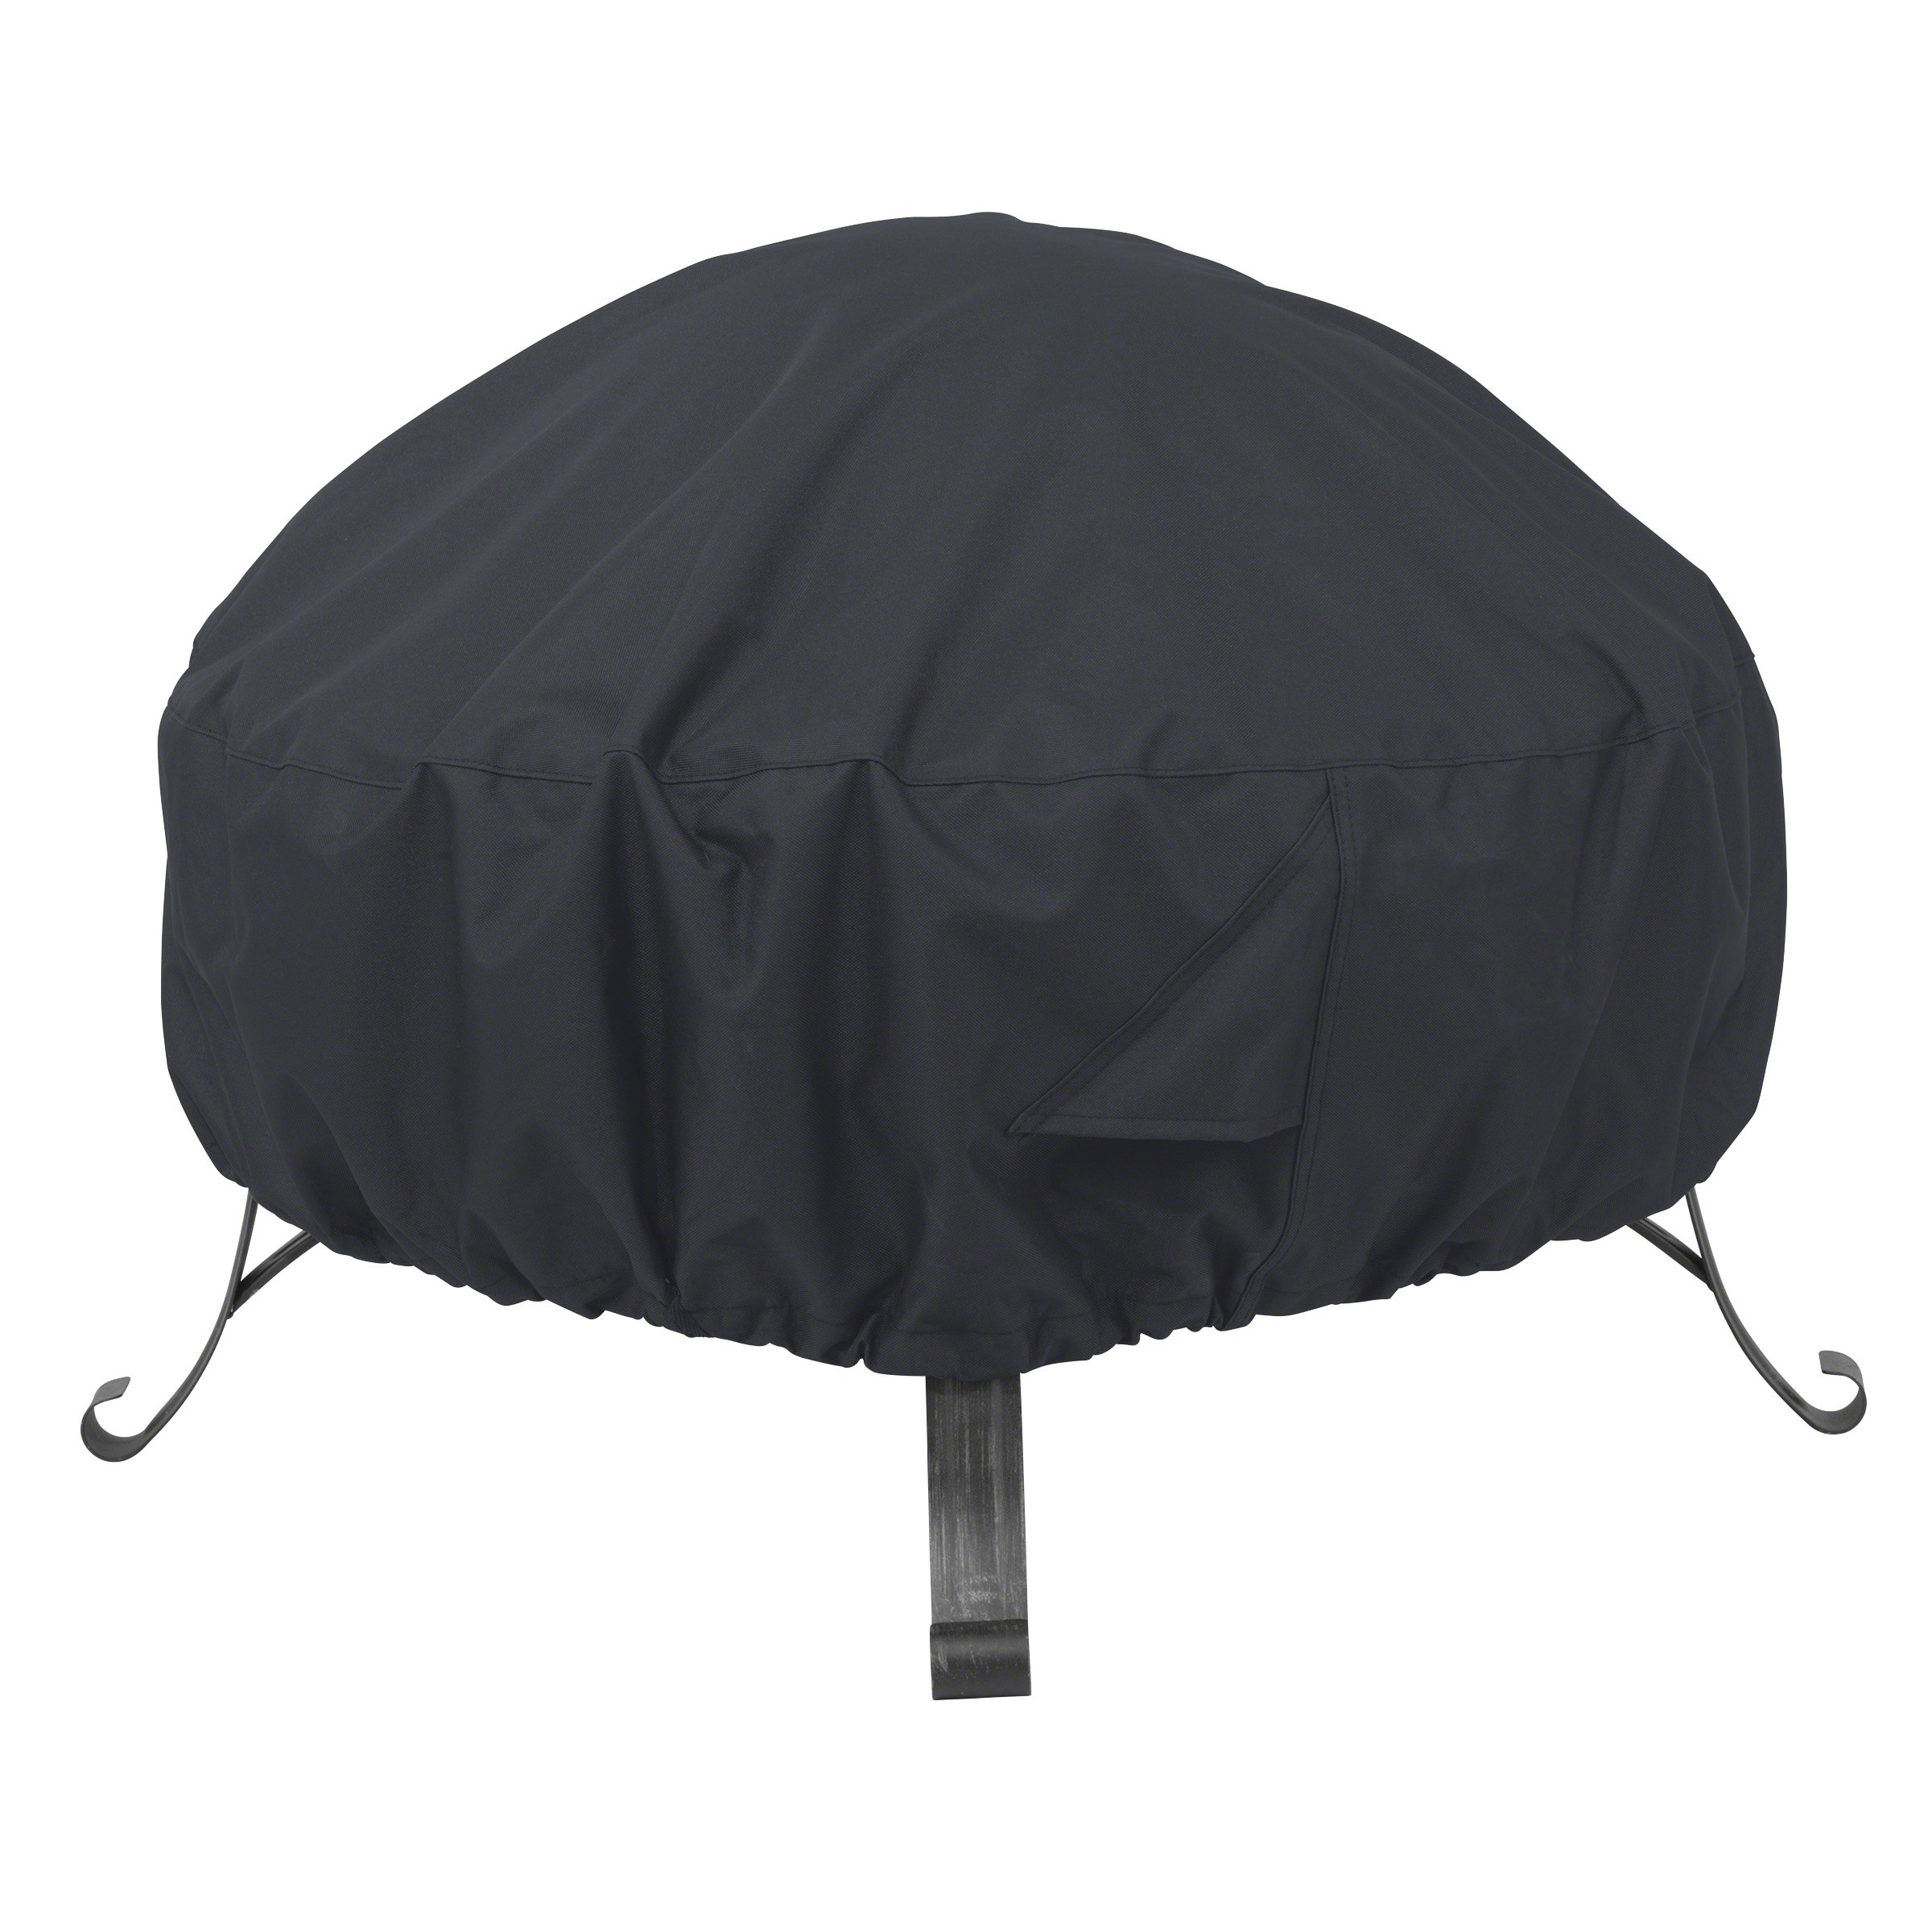 AmazonBasics Round Patio Fire Pit Cover - 60'', Black by AmazonBasics